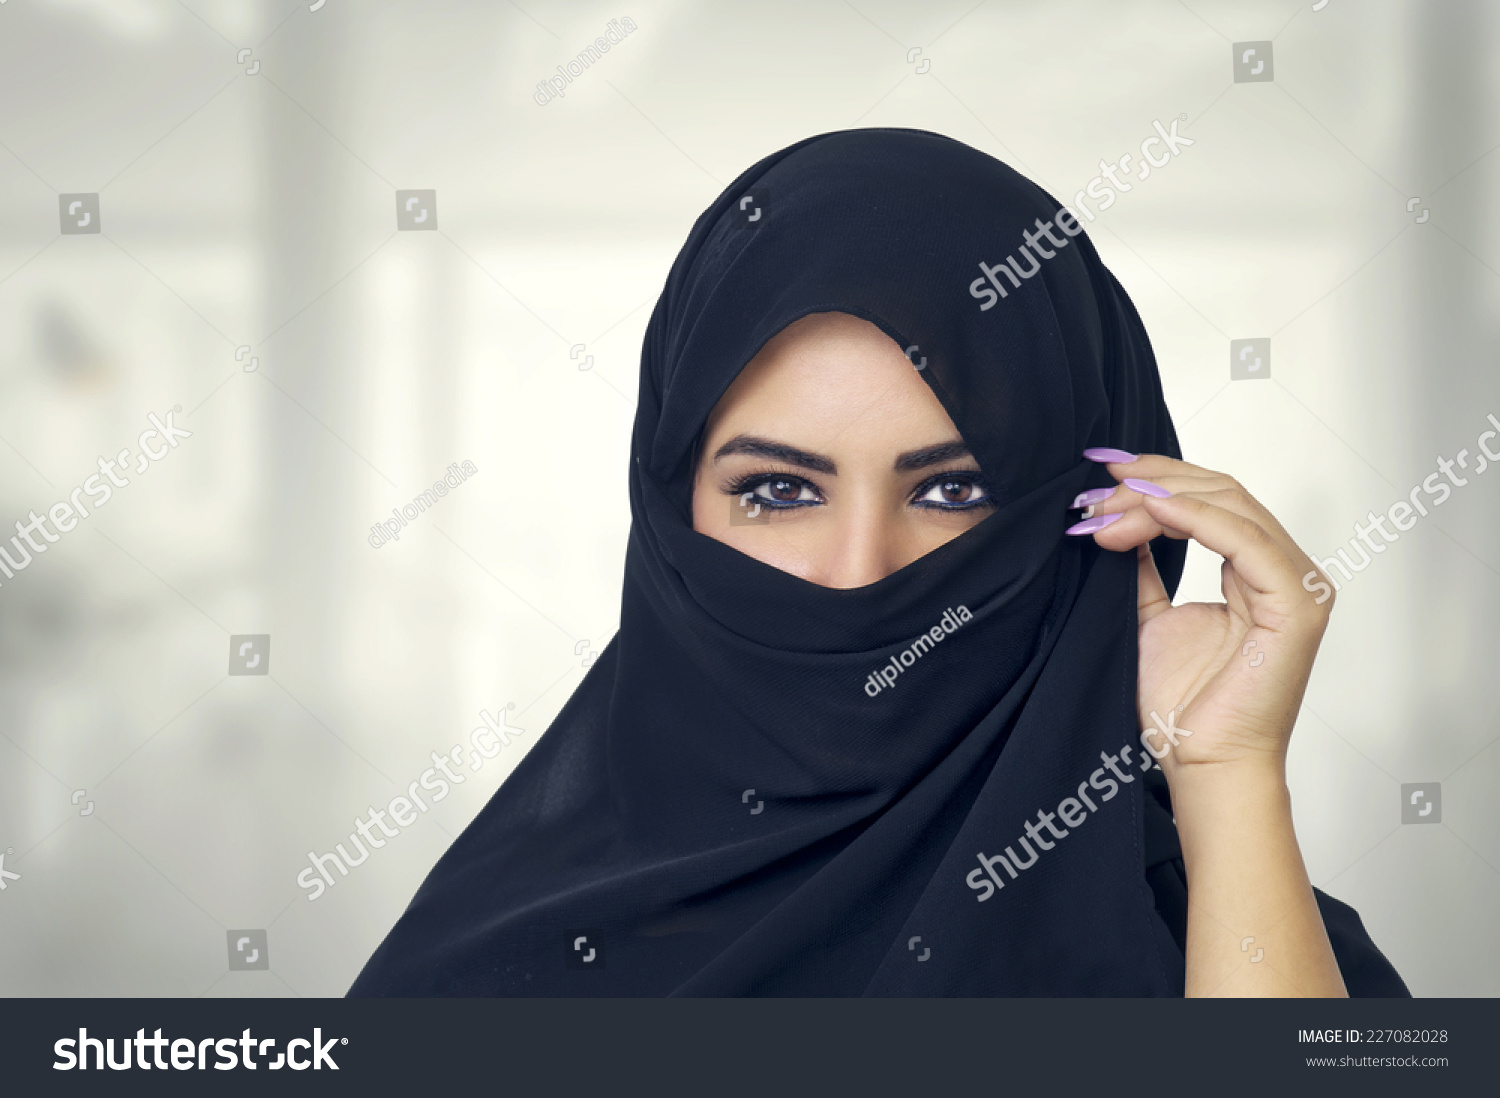 pelahatchie single muslim girls Dress code of muslim women allah the meaning of awrah and sexuality then it is permissible for her to uncover herself to the same degree as with other muslim women.